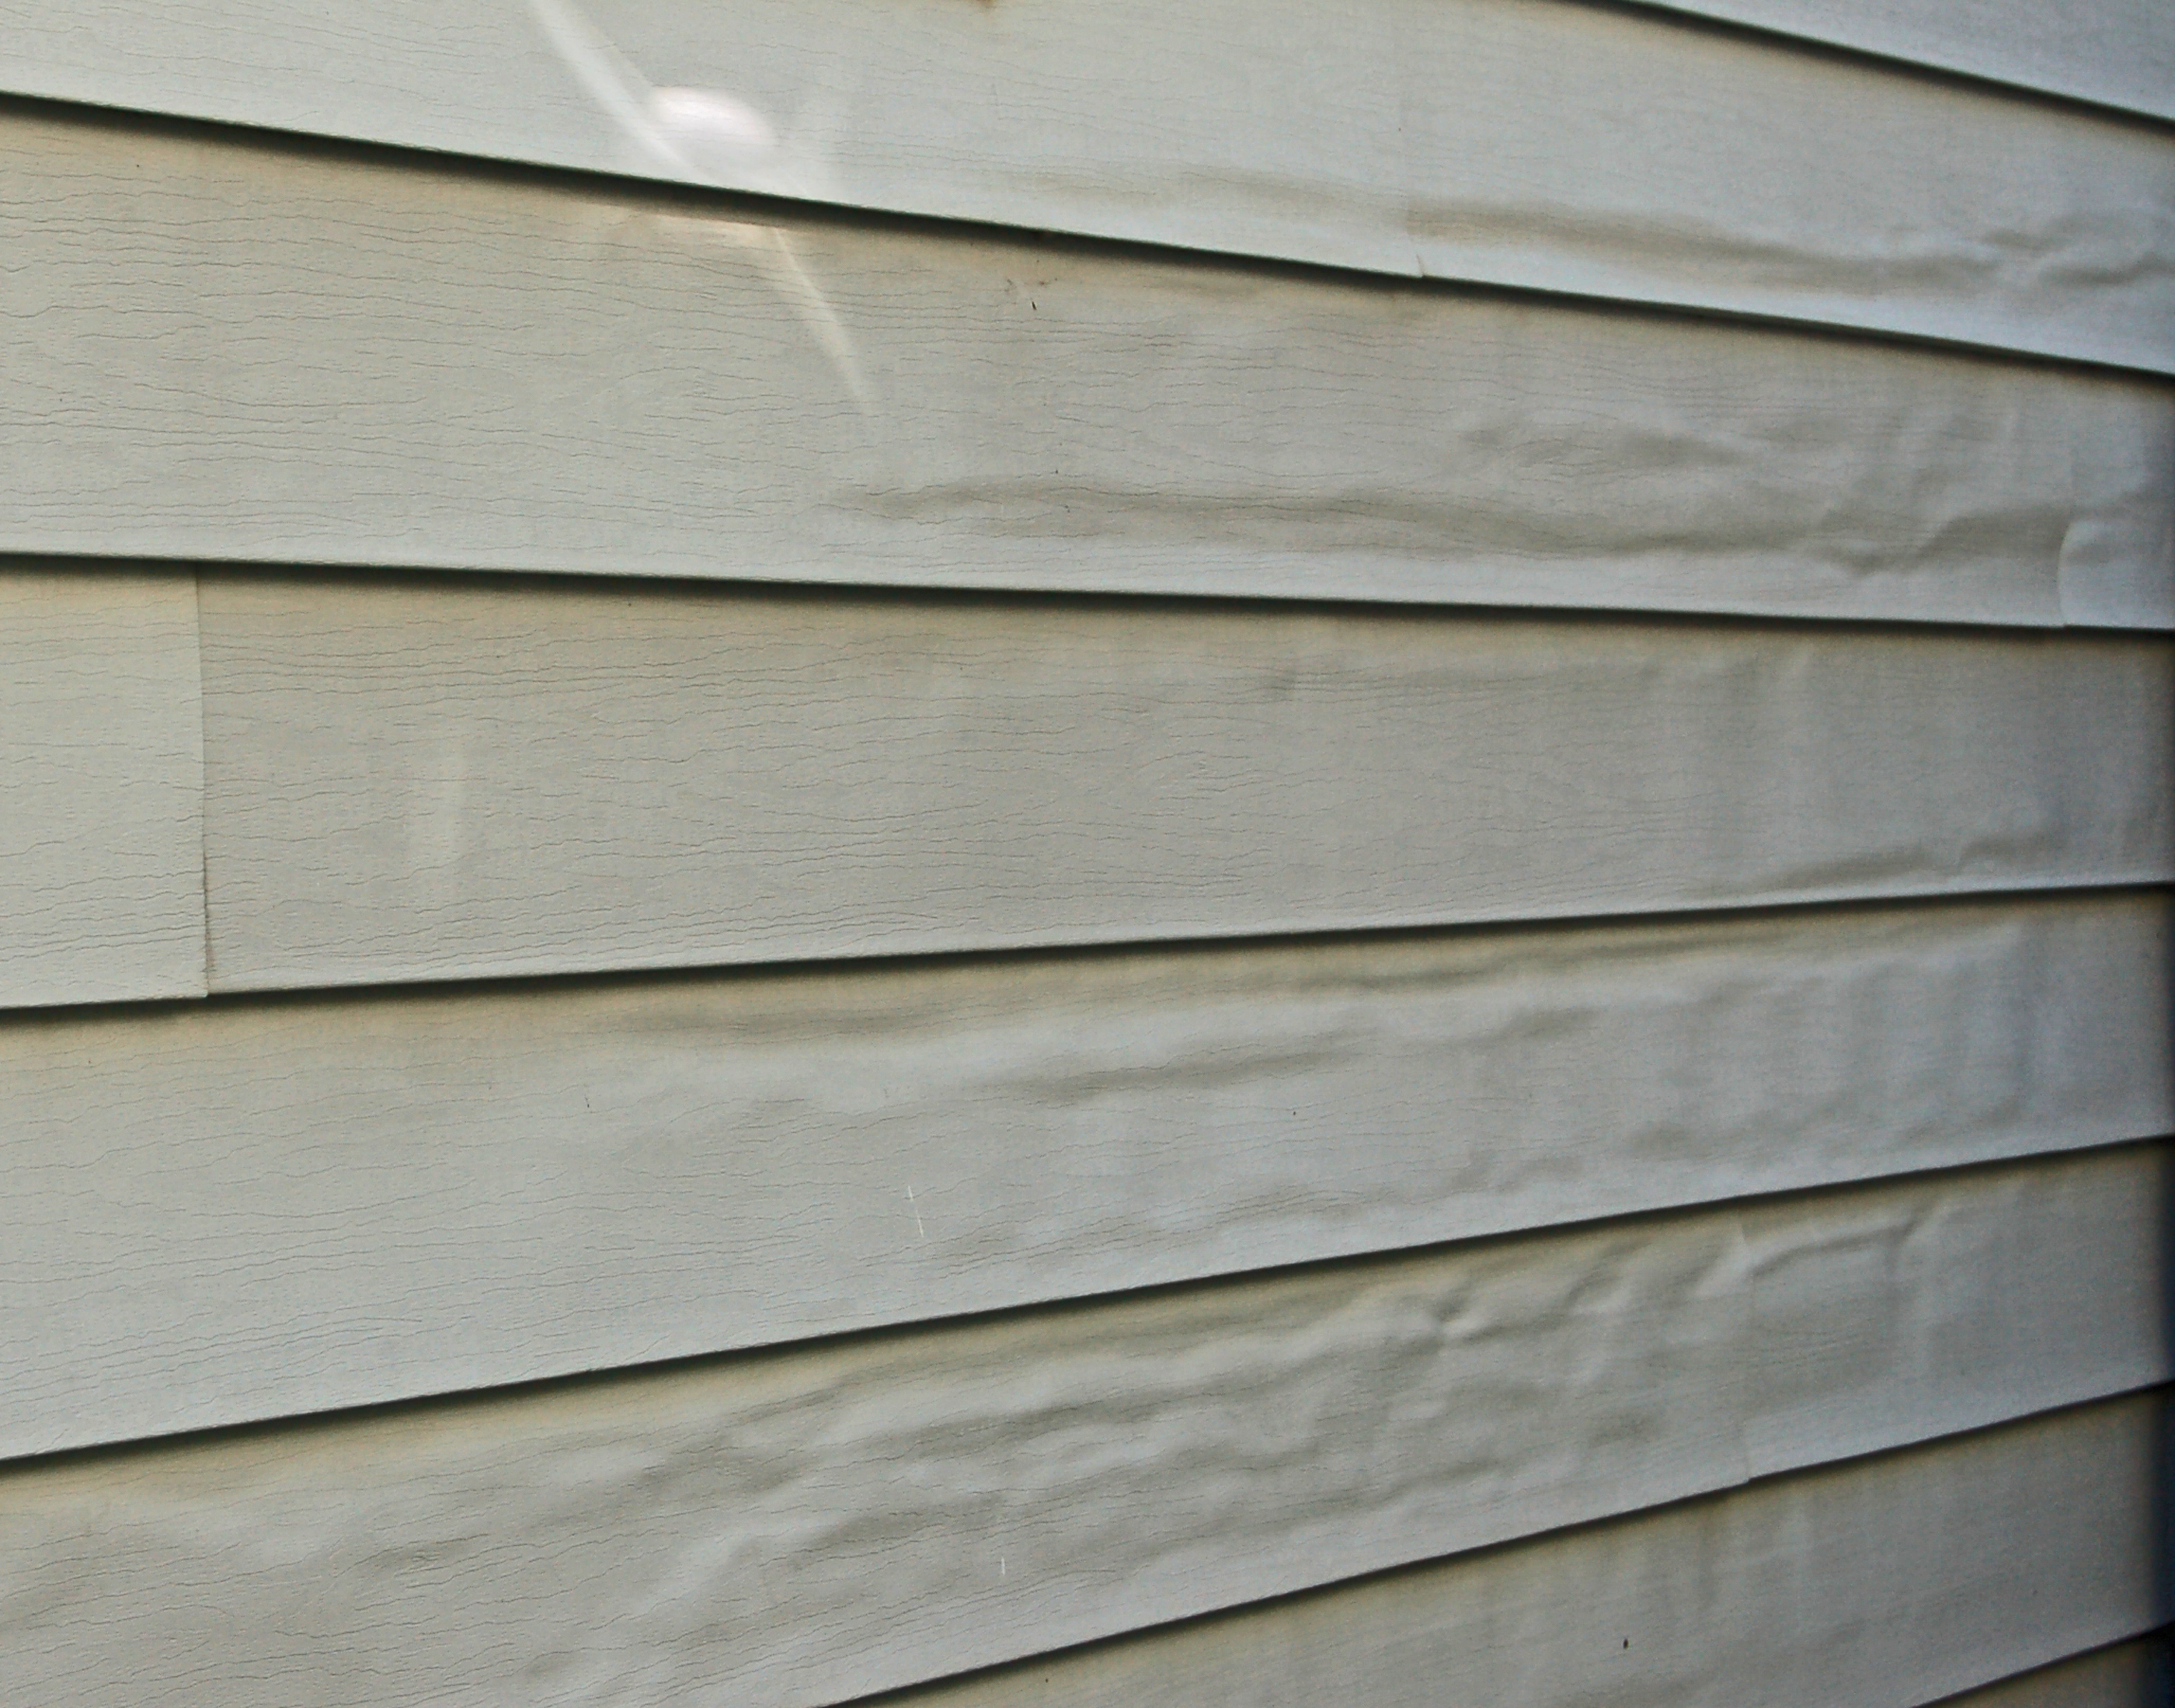 vinyl siding car parts pool covers and paint melting on homes jenn strathman. Black Bedroom Furniture Sets. Home Design Ideas